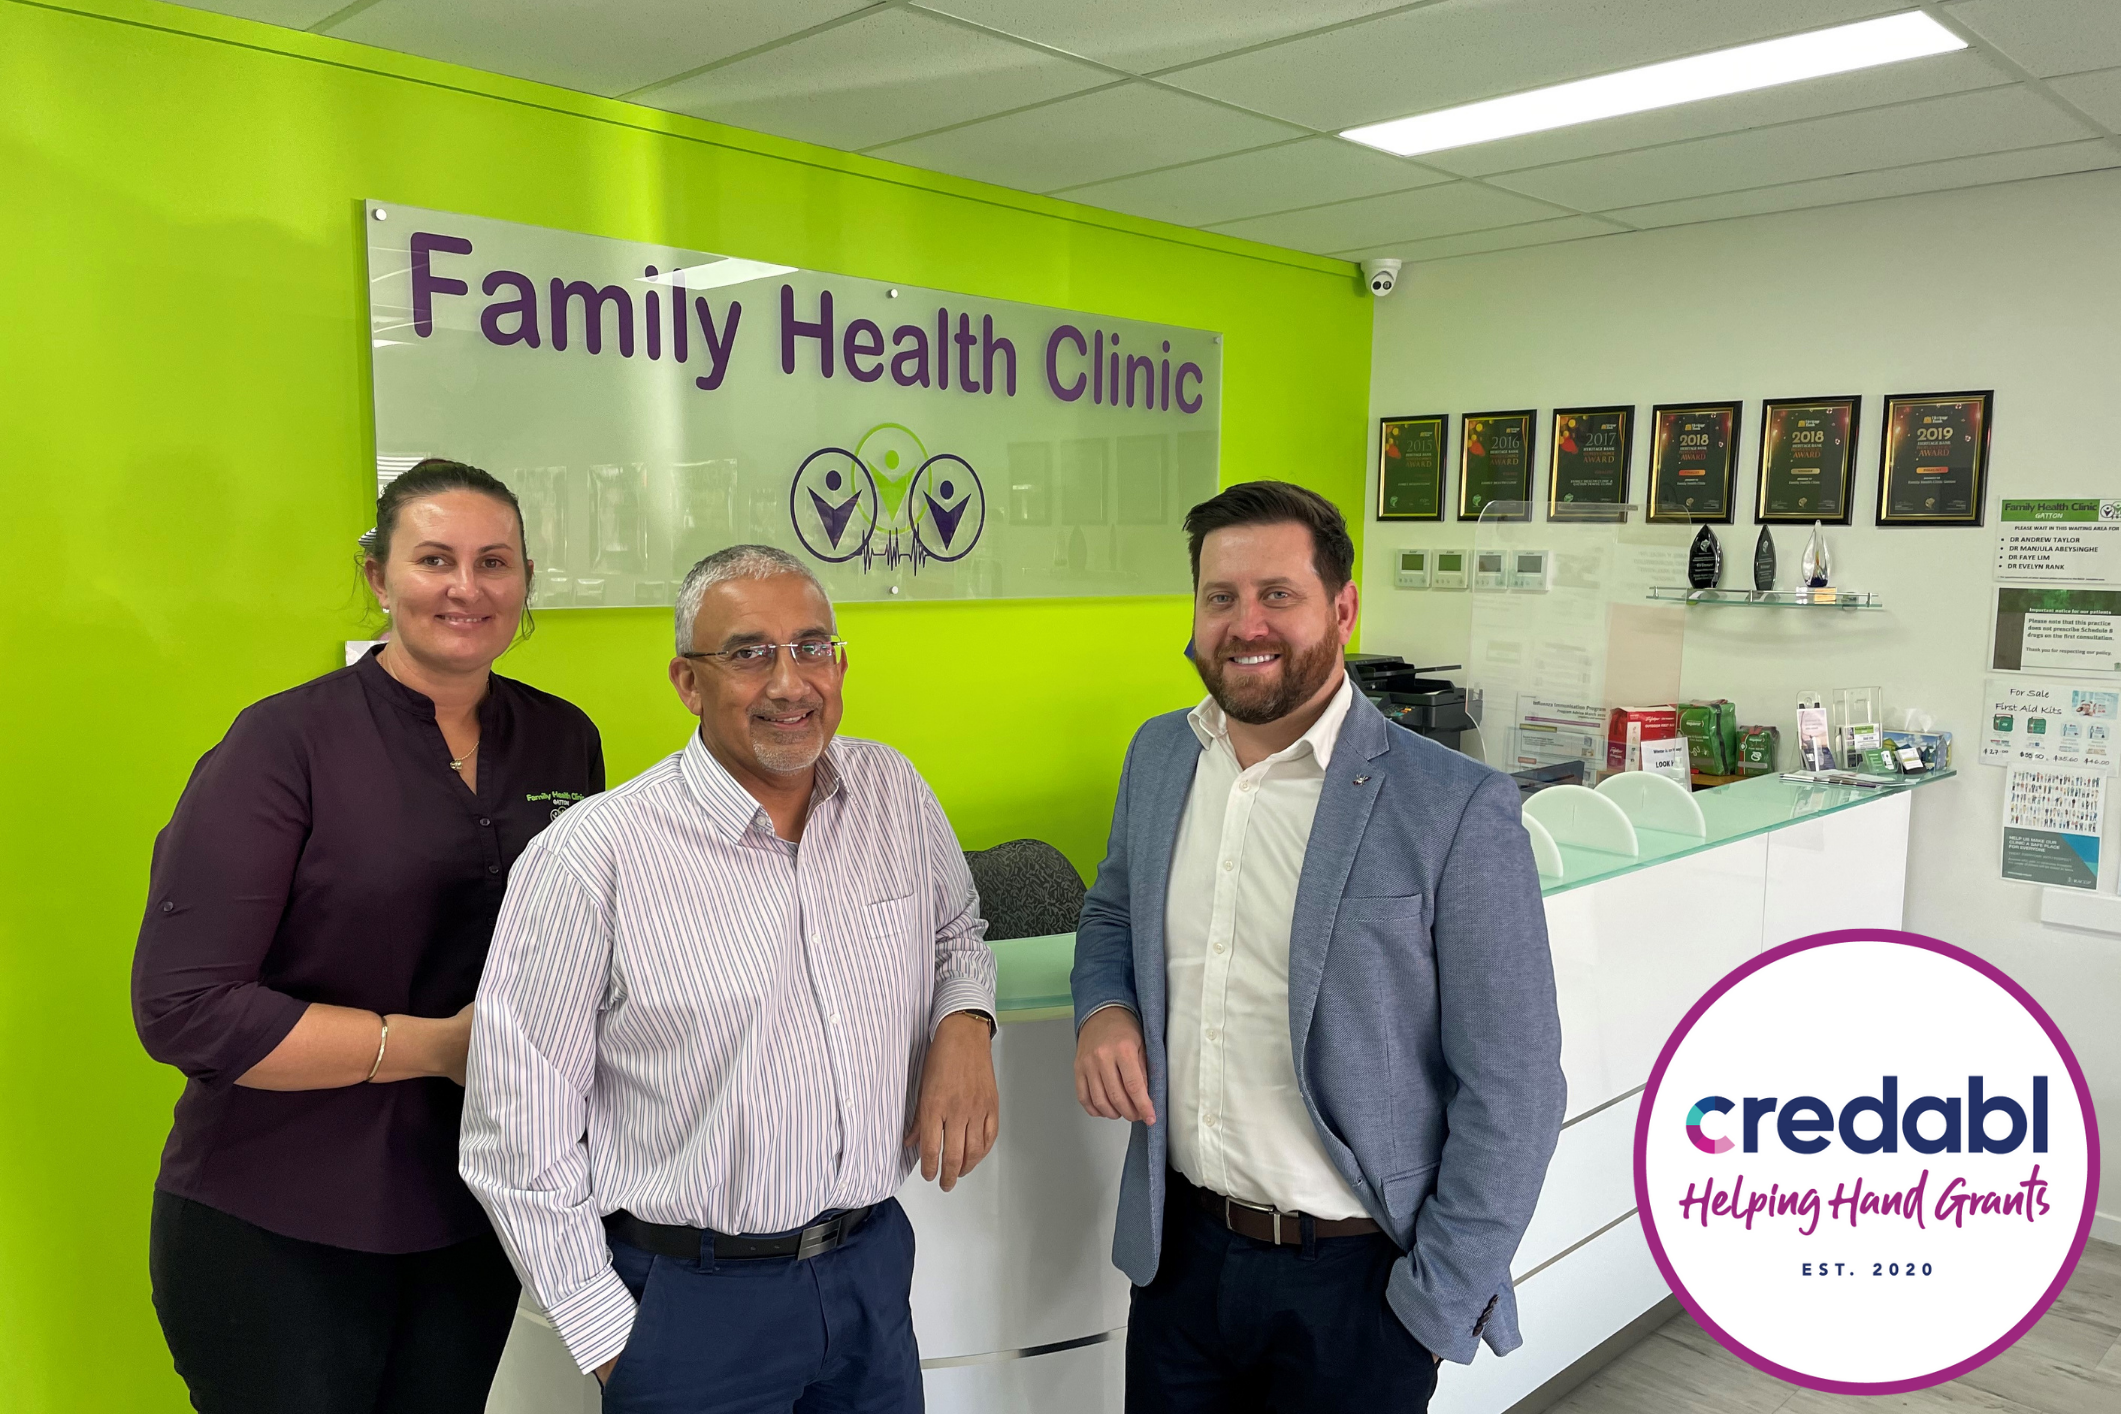 Family Health Clinic Gatton uses Credabl's Helping Hand Grant for community support